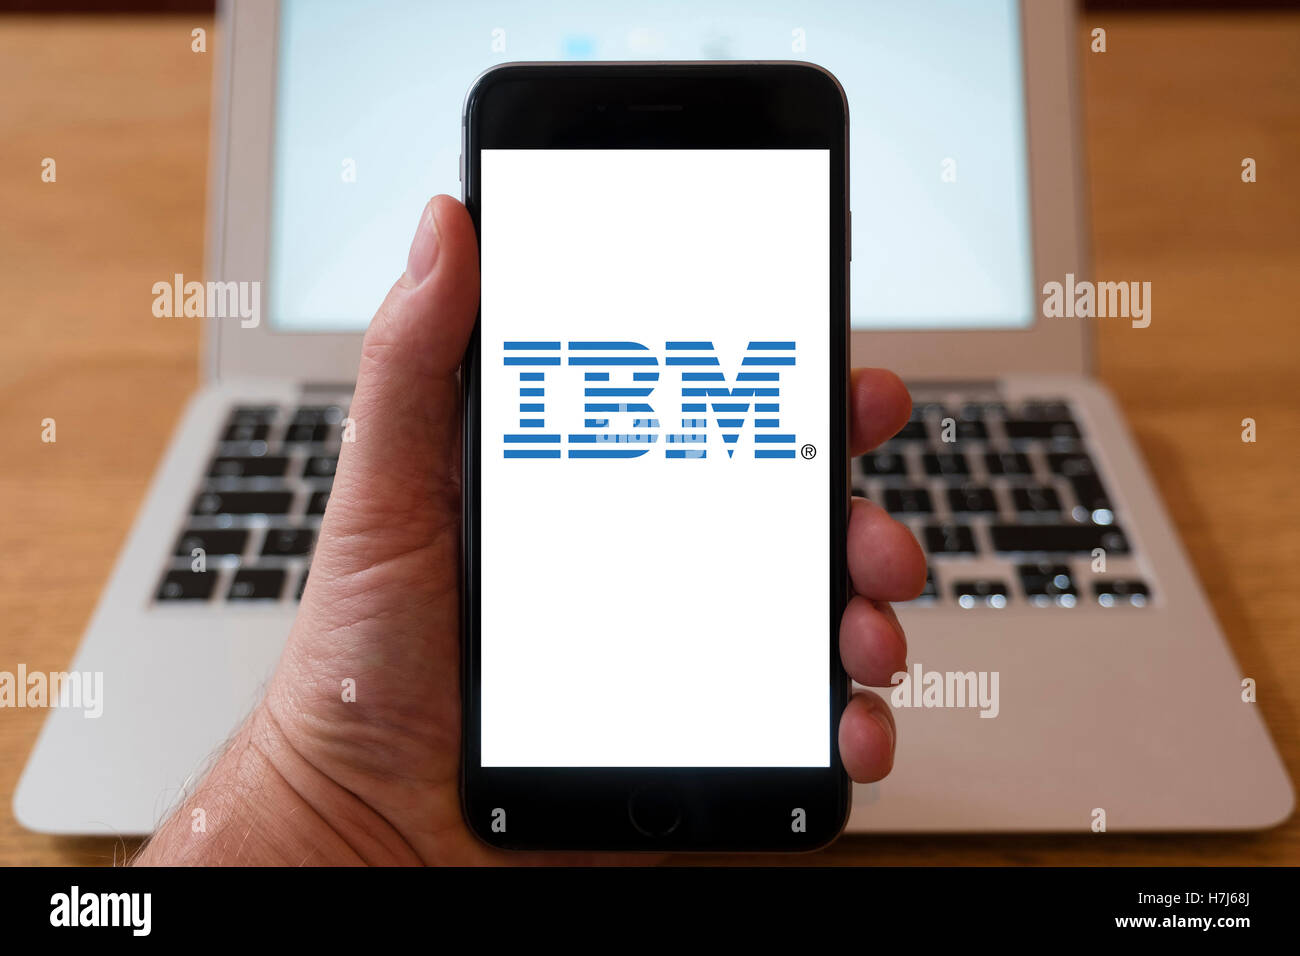 Using iPhone smart phone to display logo of IBM computer hardware and IT company - Stock Image